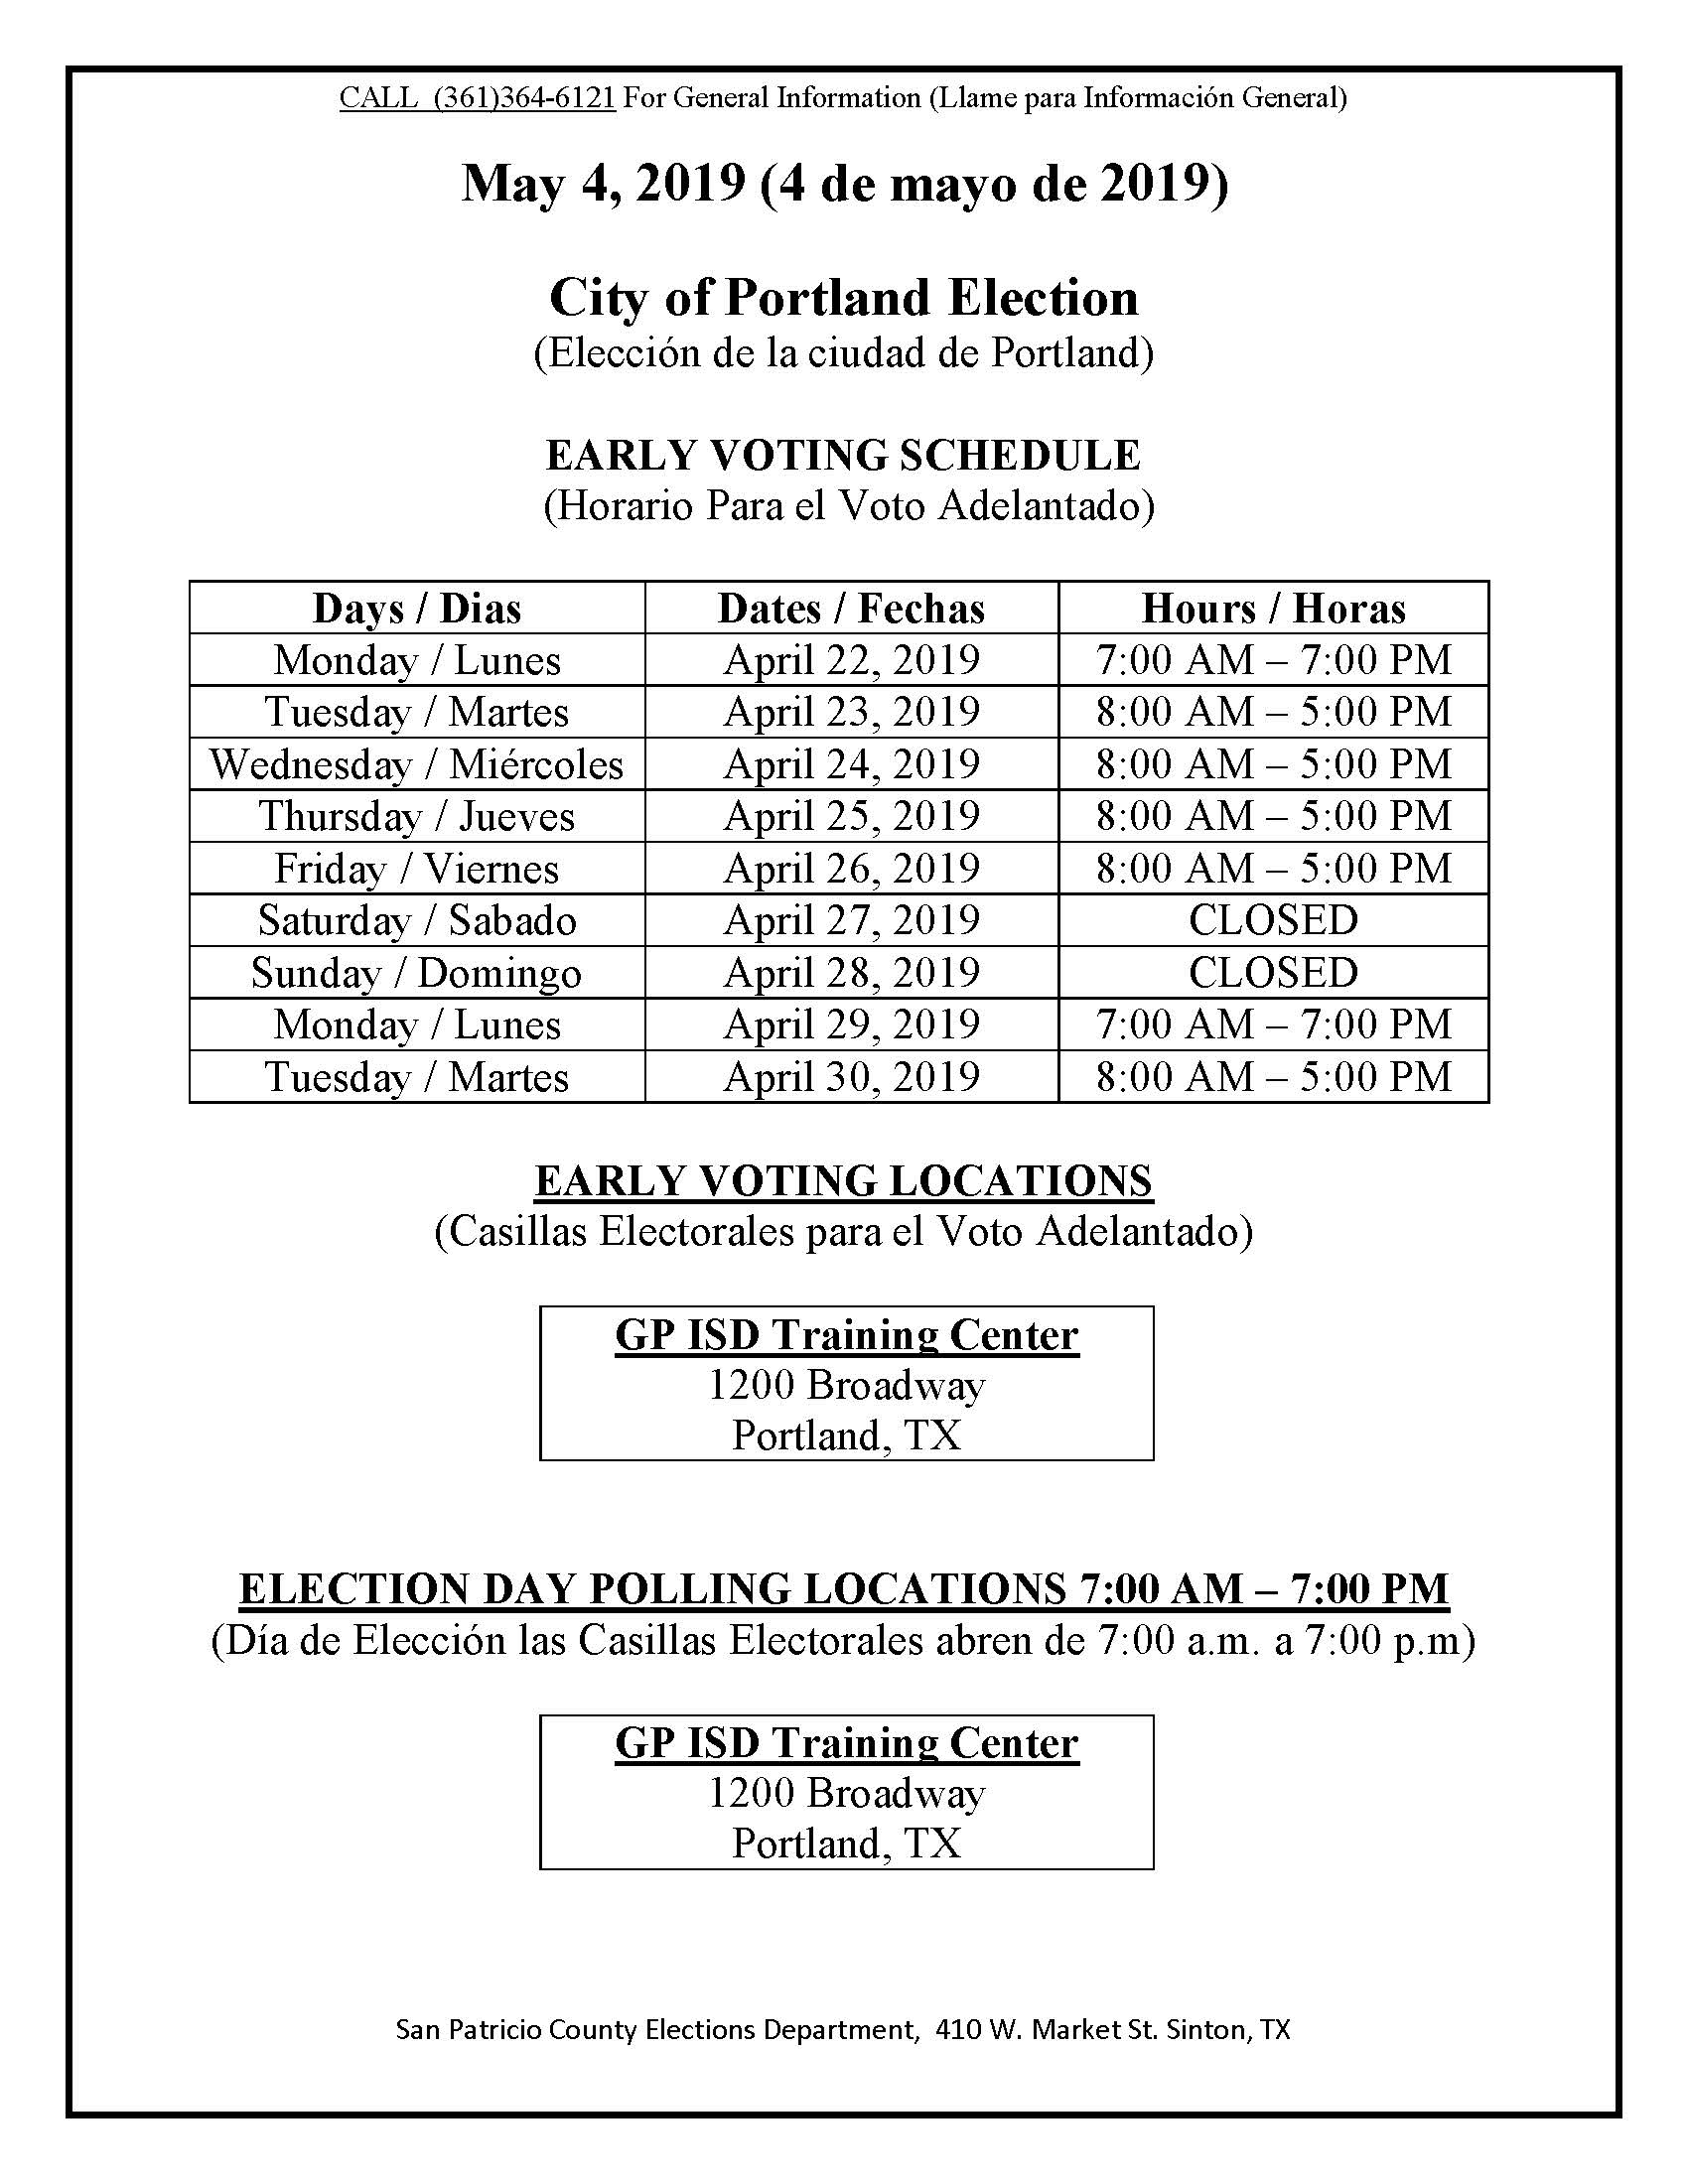 Early Voting and Election Day Schedule City of Portland